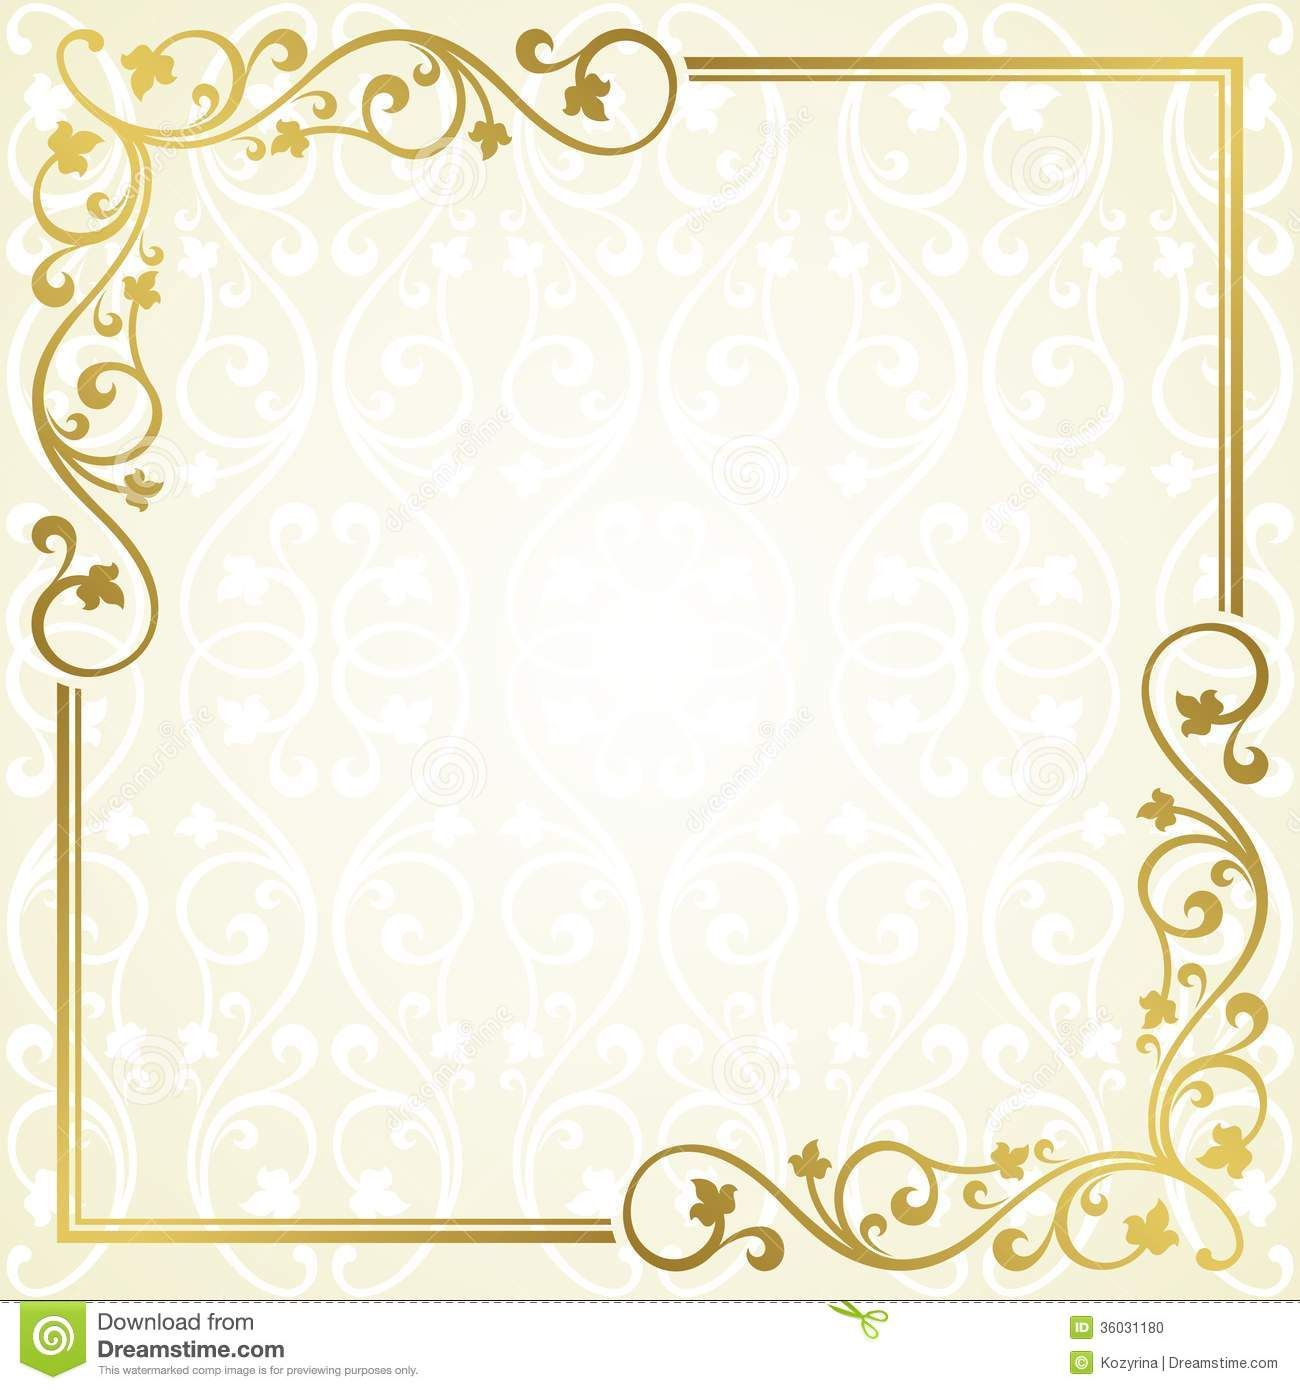 Invitation Card Designs Templates Plain Wedding Invitations Free Invitation Cards Marriage Invitation Card